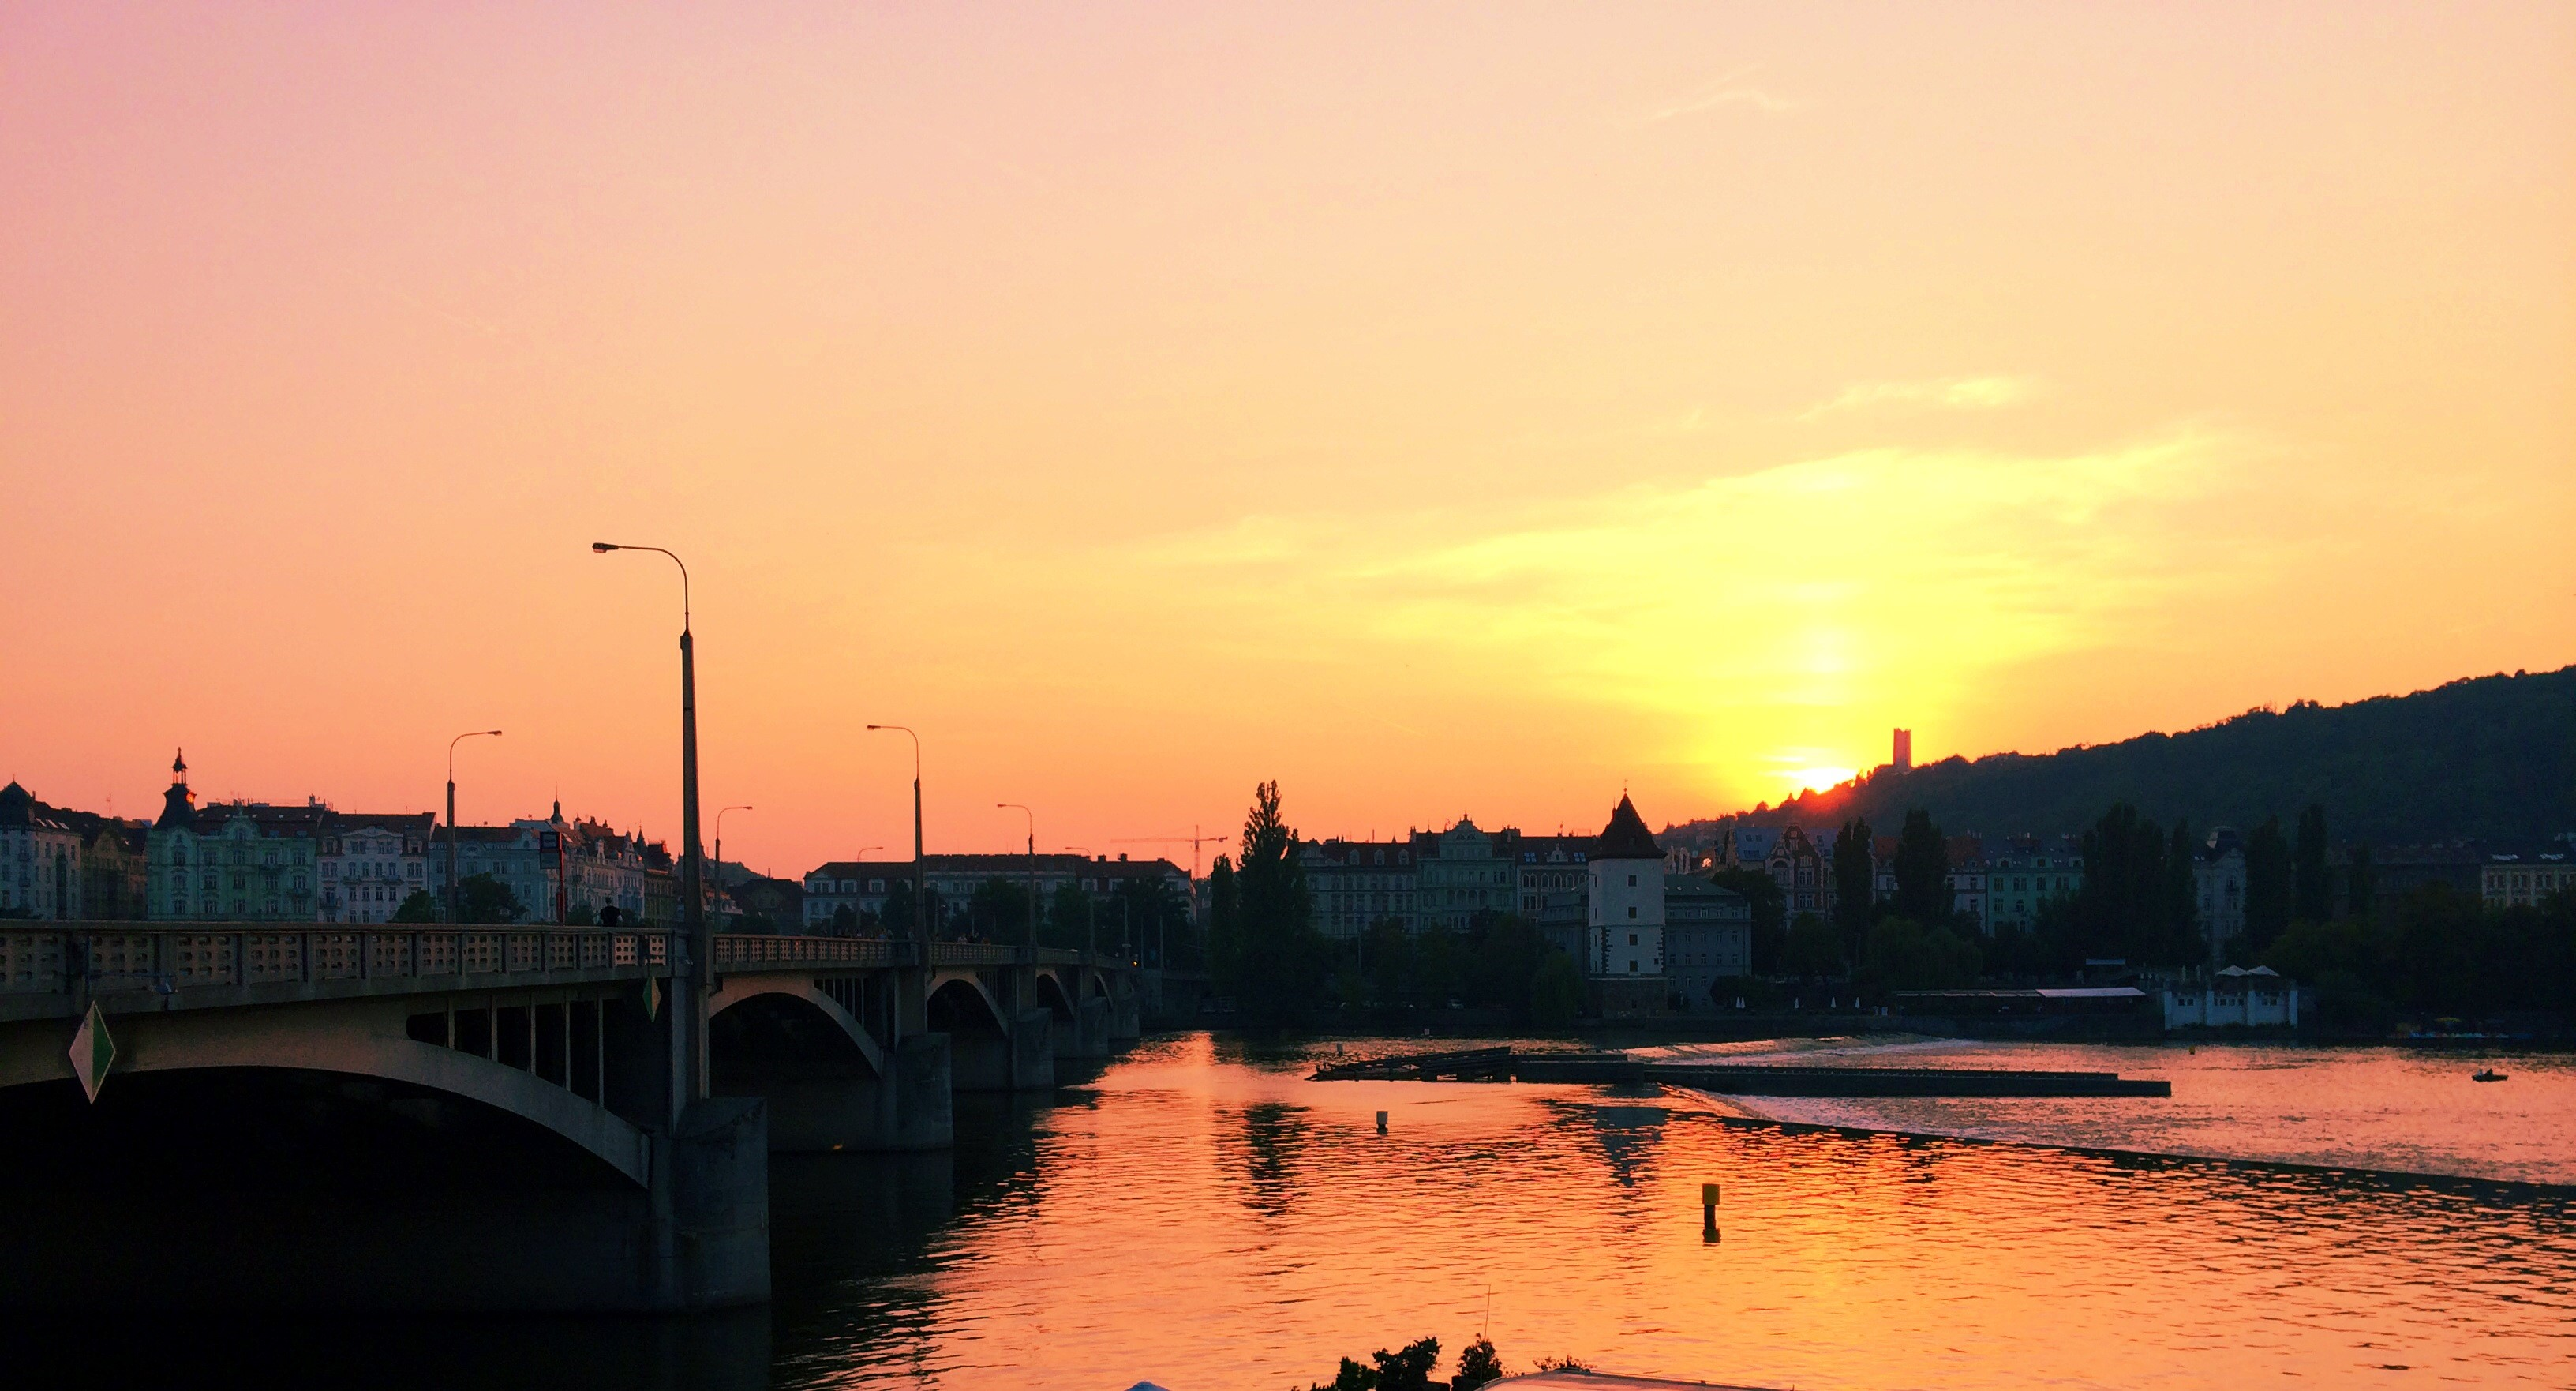 The Vltava River at sunset right by my dorm.